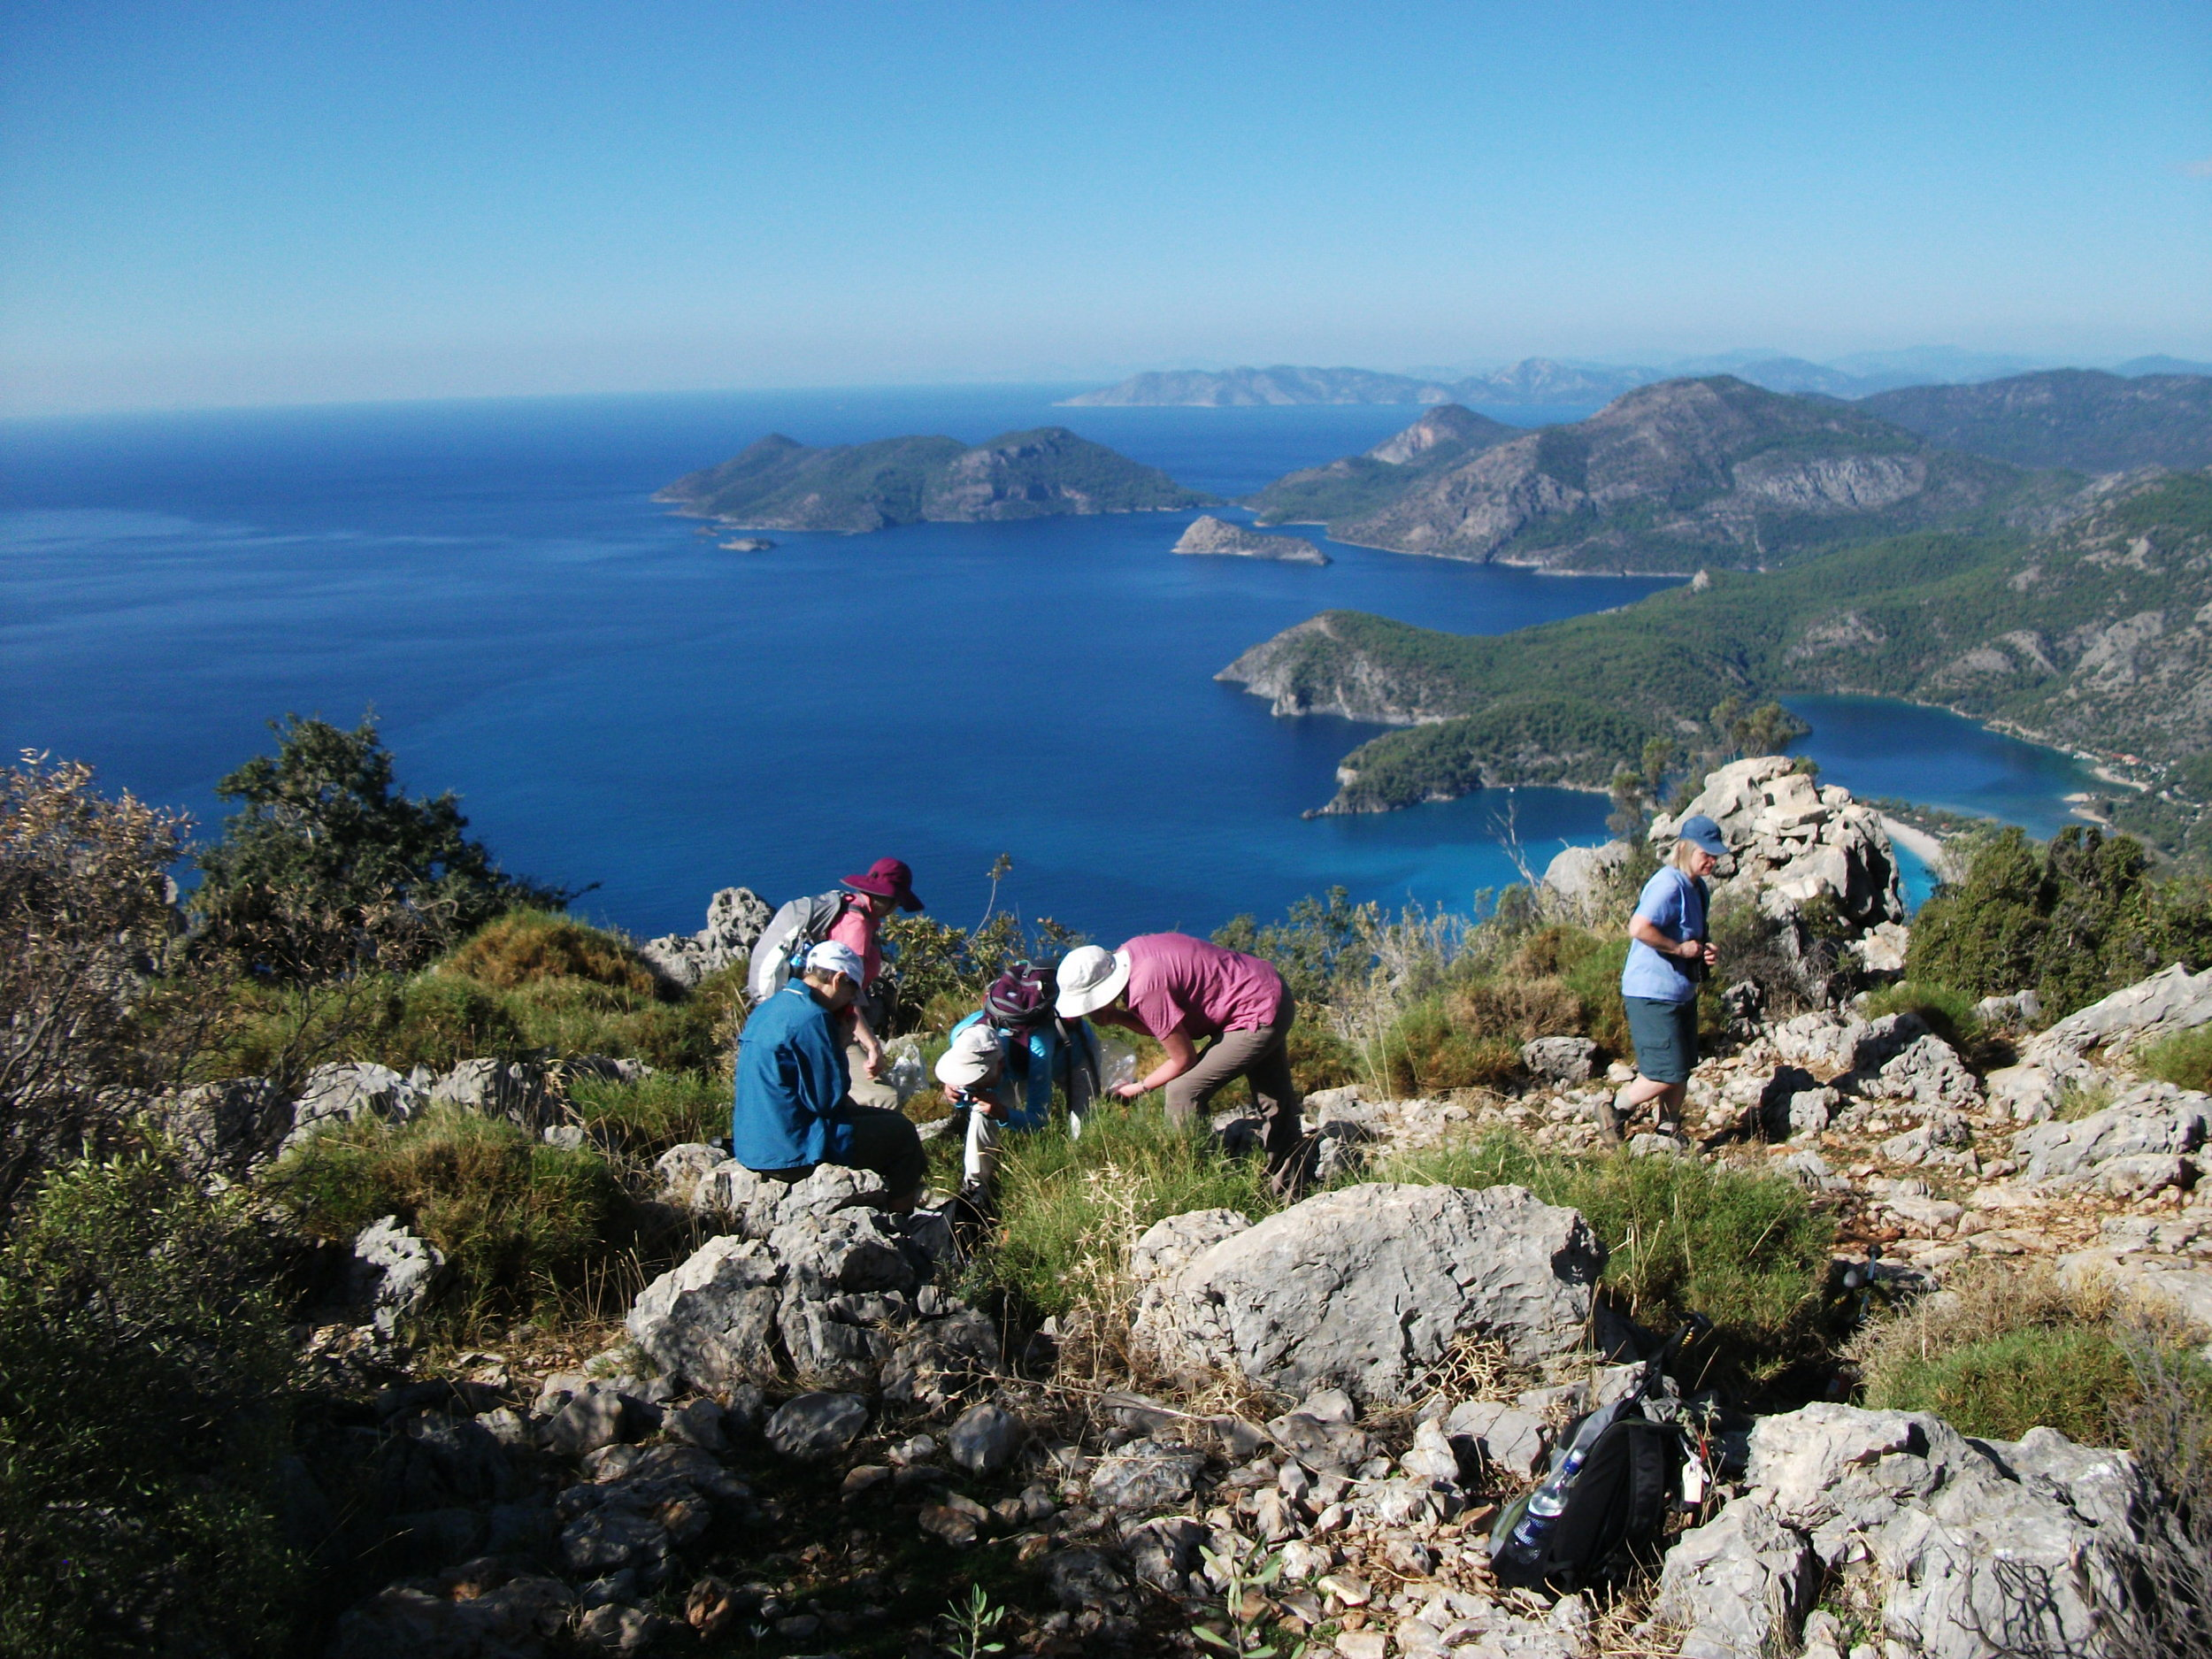 Lycian Way - TurkeyThe Kingdom of Lycia on Turkey's Mediterranean coast has seen the feet of many ancient peoples. Today the Lycian Way allows the lover of beautiful scenery and antiquity to experience this 'country of light'.